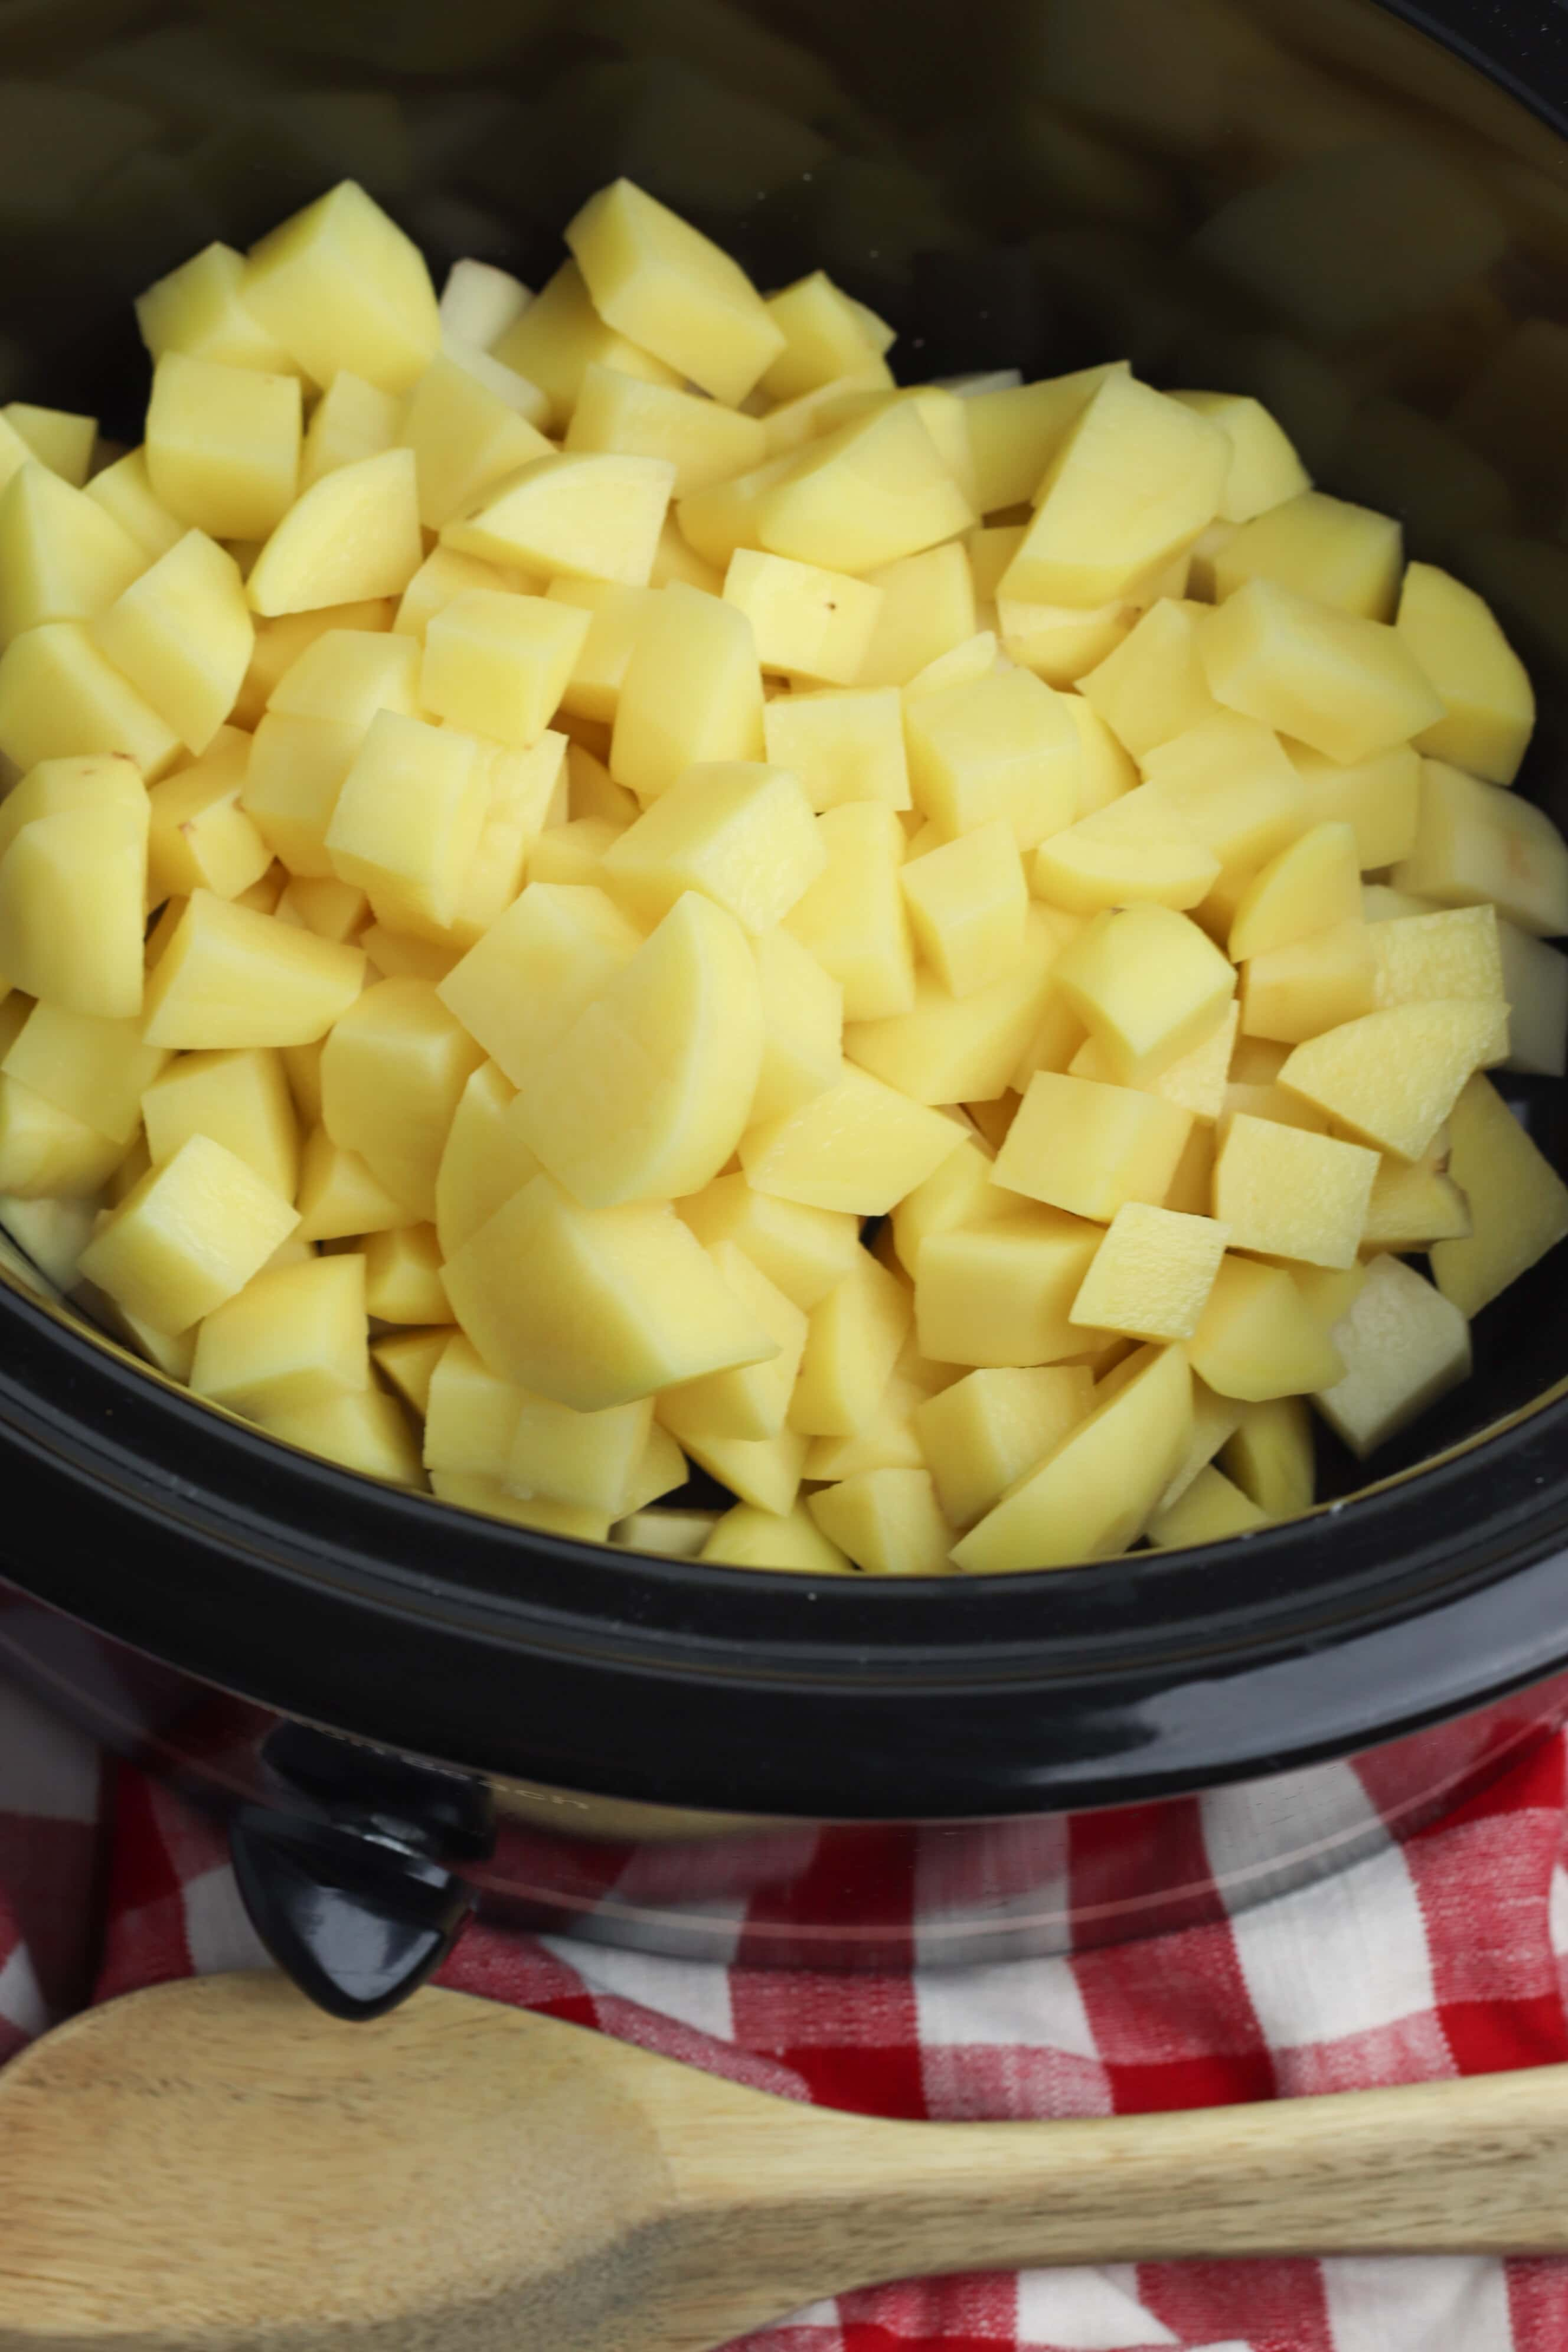 This crockpot mashed potatoes with cheddar recipe takes requires no boiling. It's perfectly delicious for thanksgiving or your next dinner party!